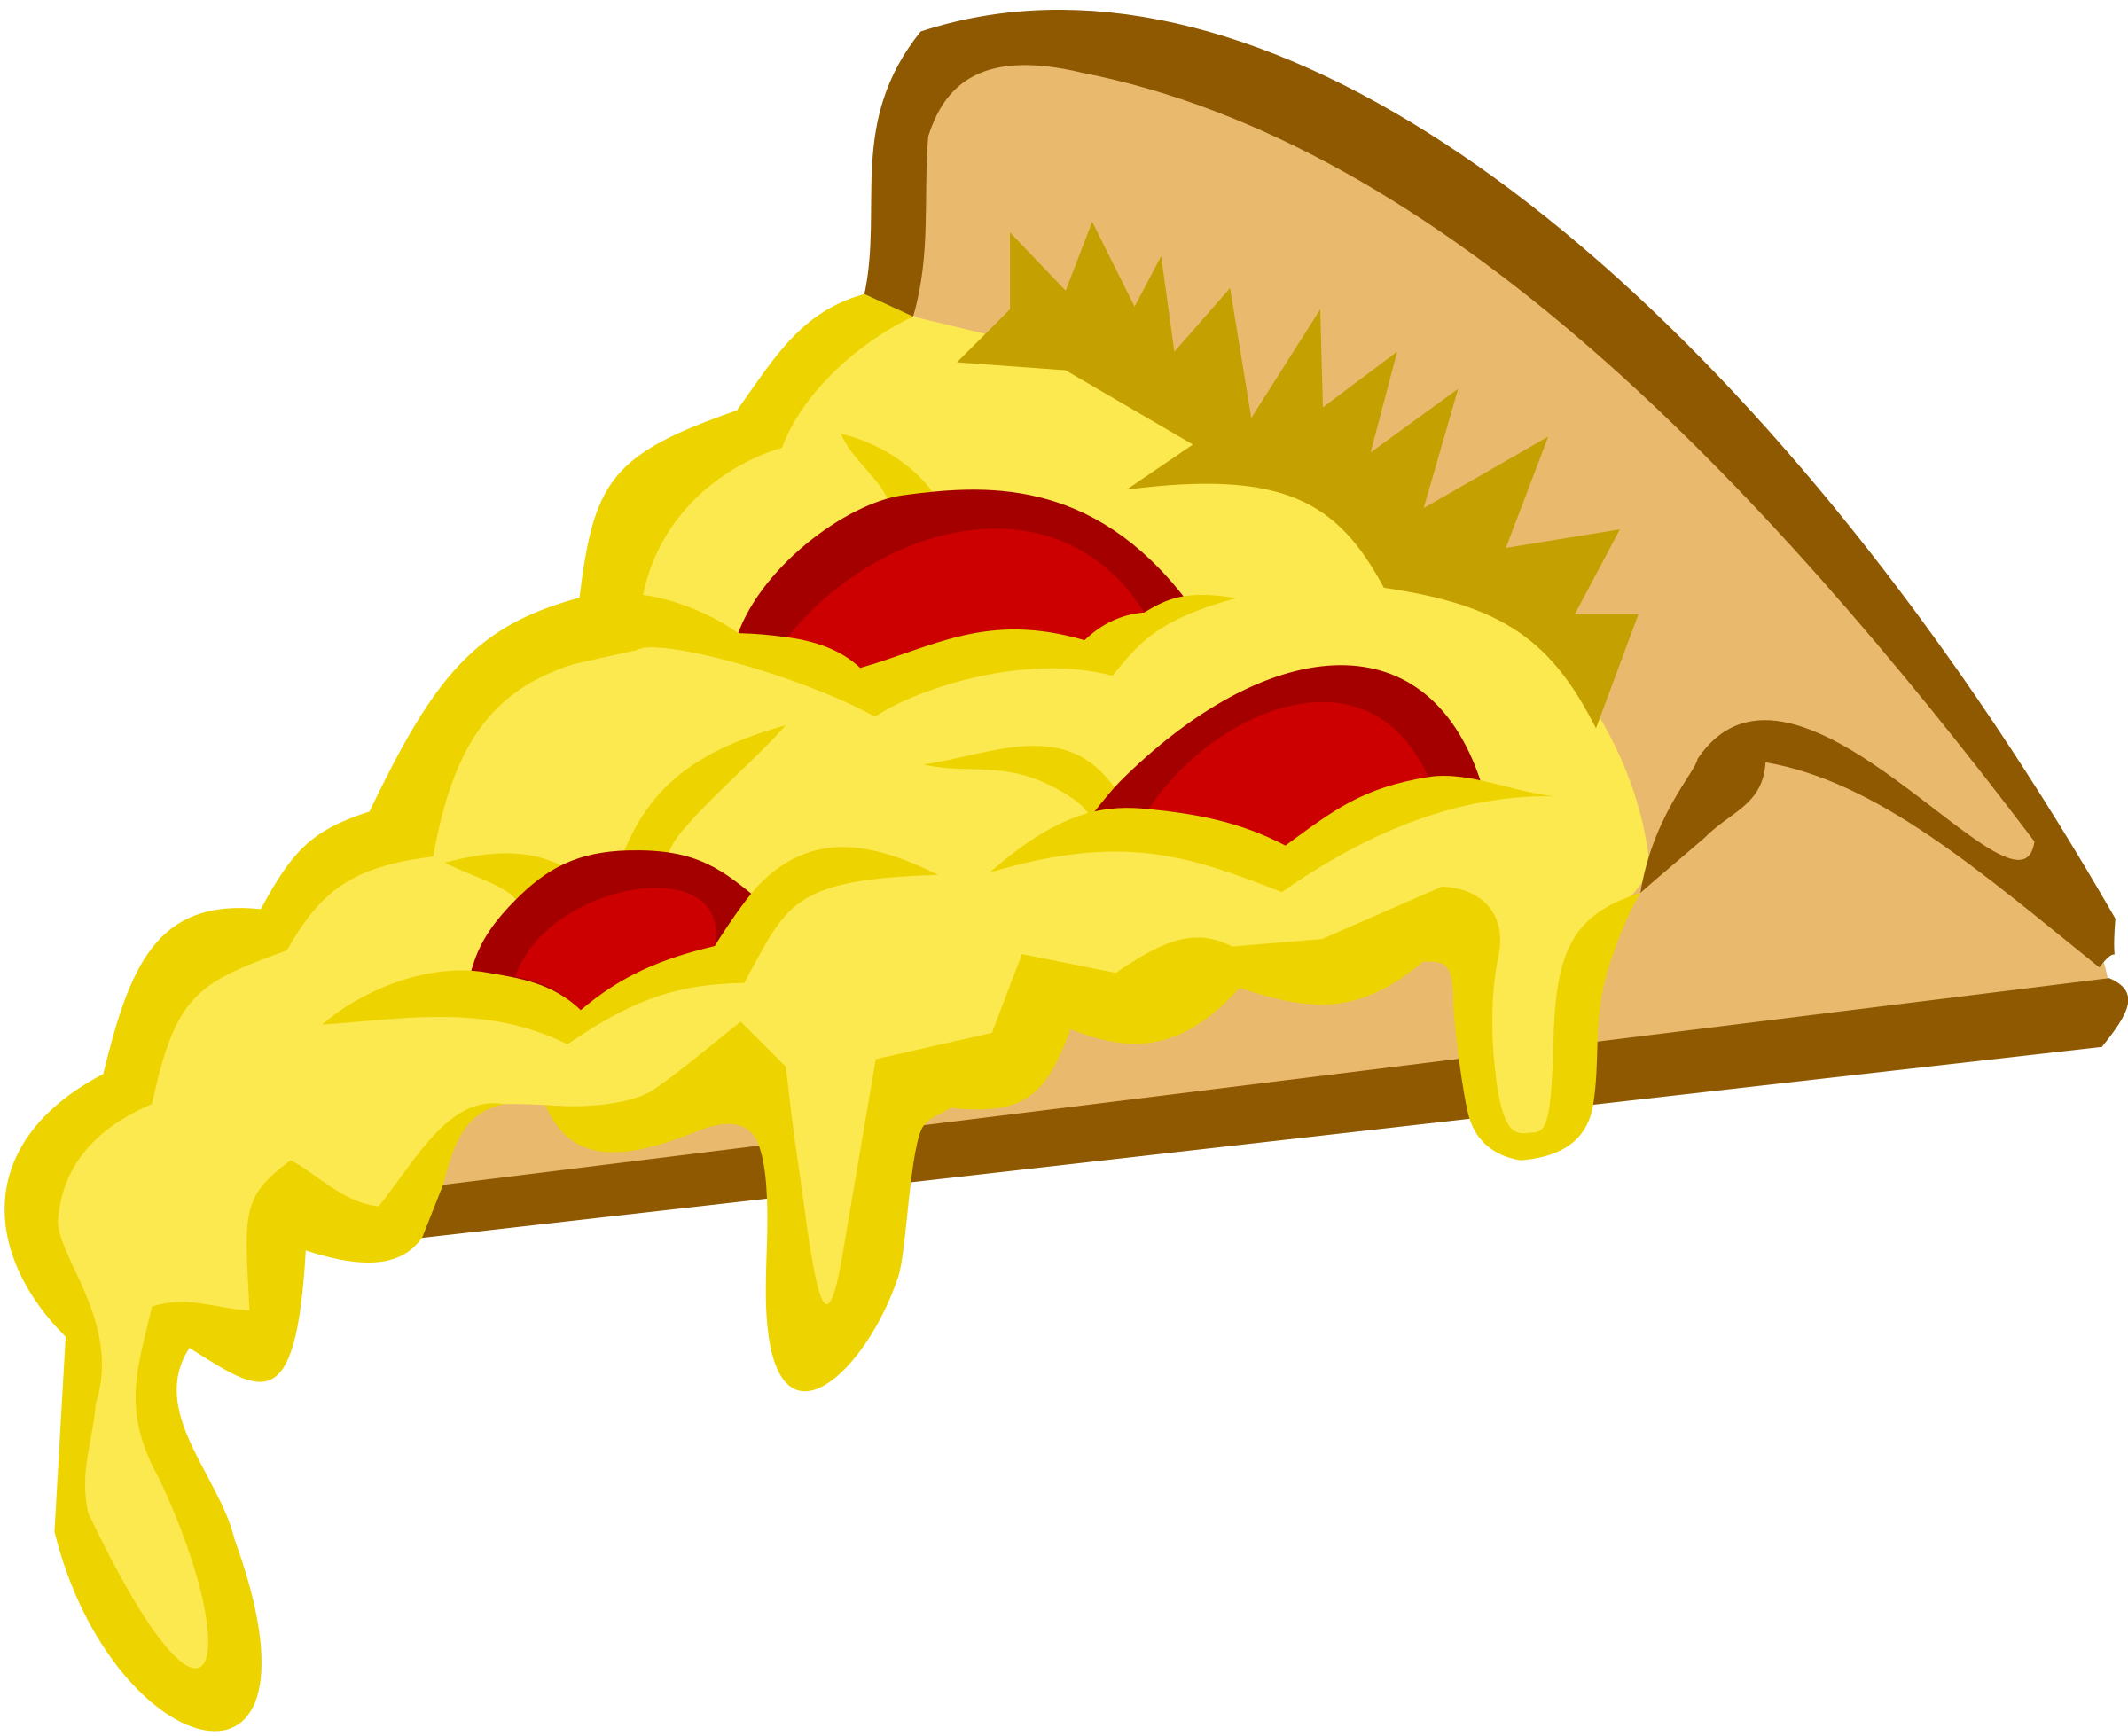 Pizza clipart melted Cheese Free Free Cheese Pizza